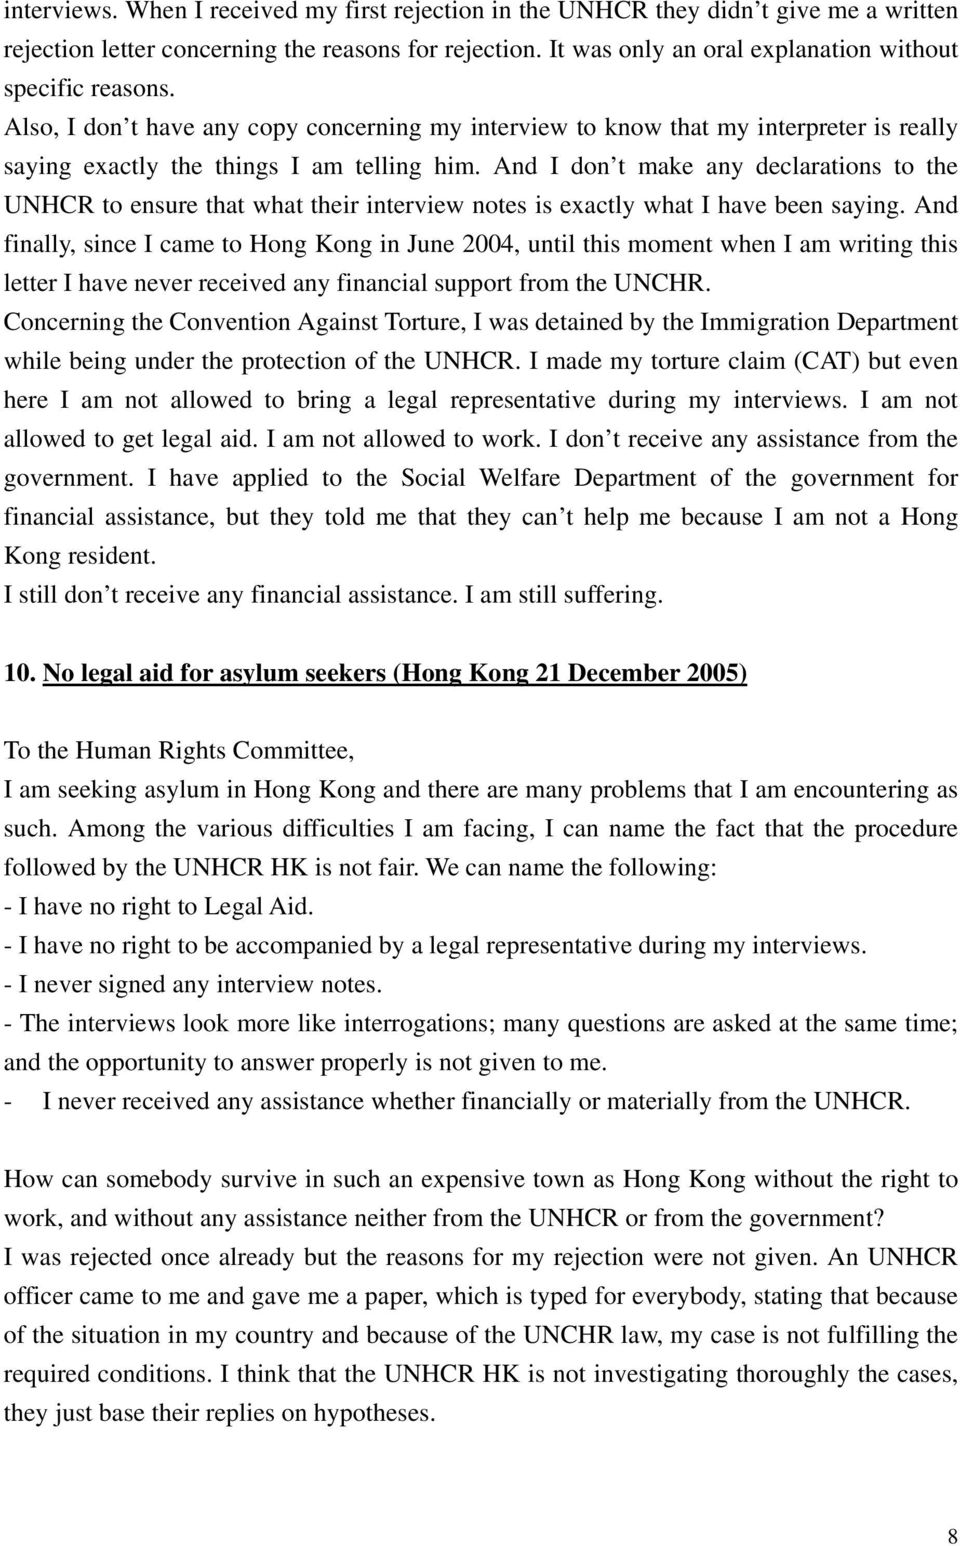 And I don t make any declarations to the UNHCR to ensure that what their interview notes is exactly what I have been saying.